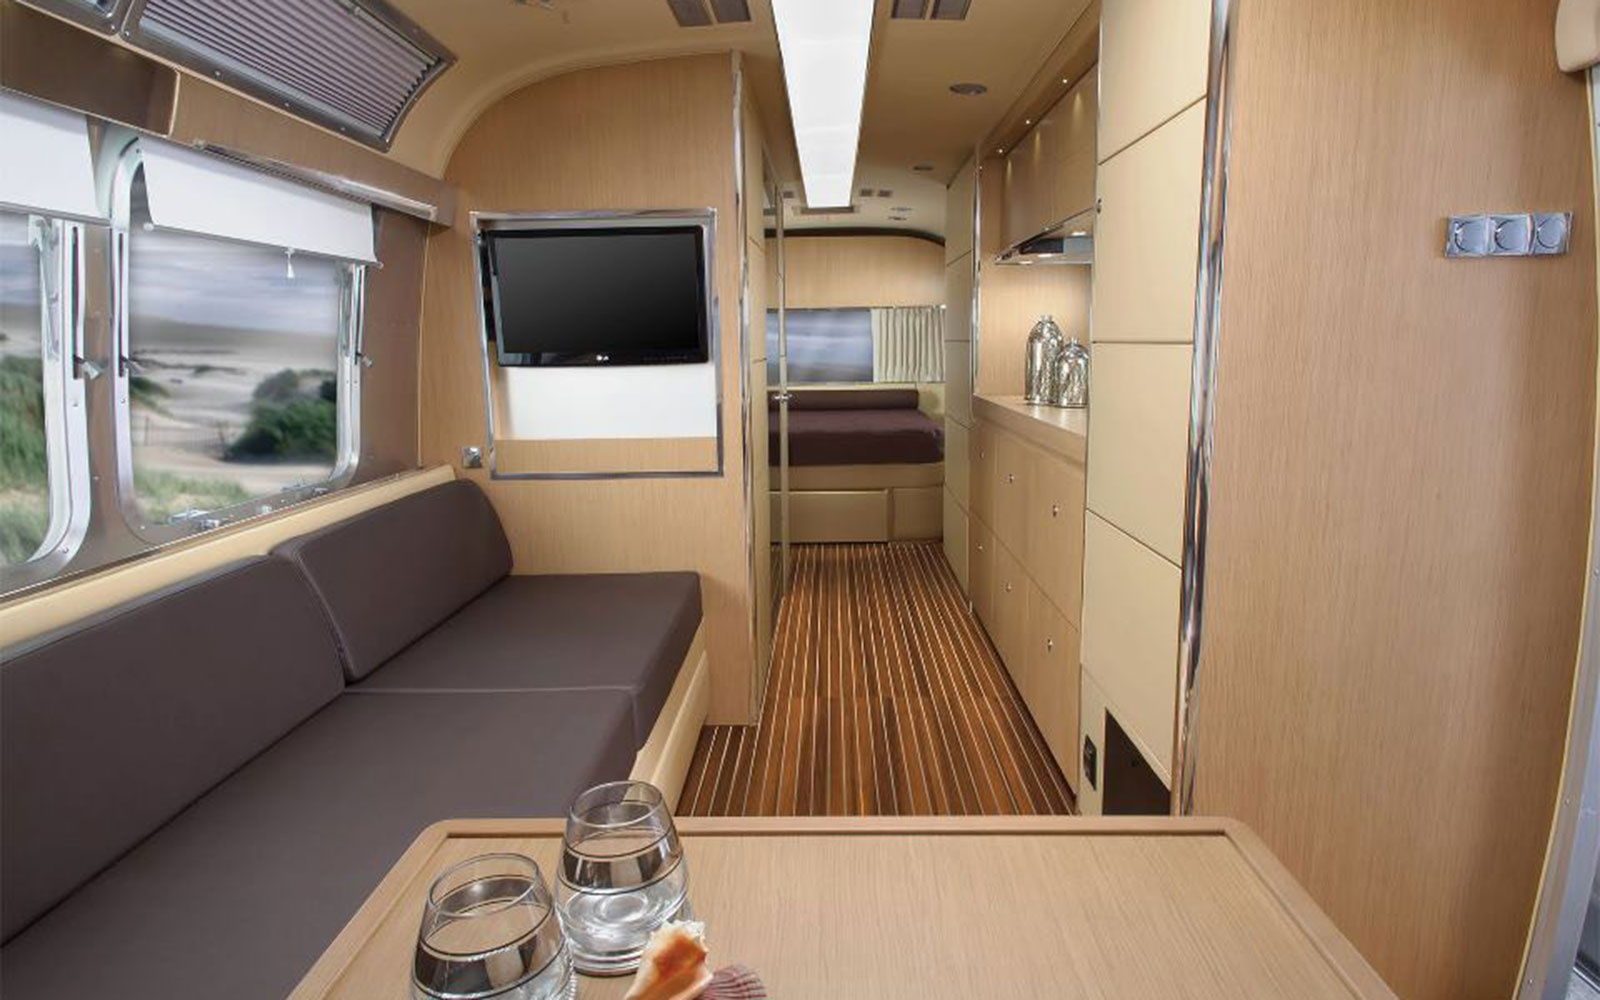 Airstream Camper, USA